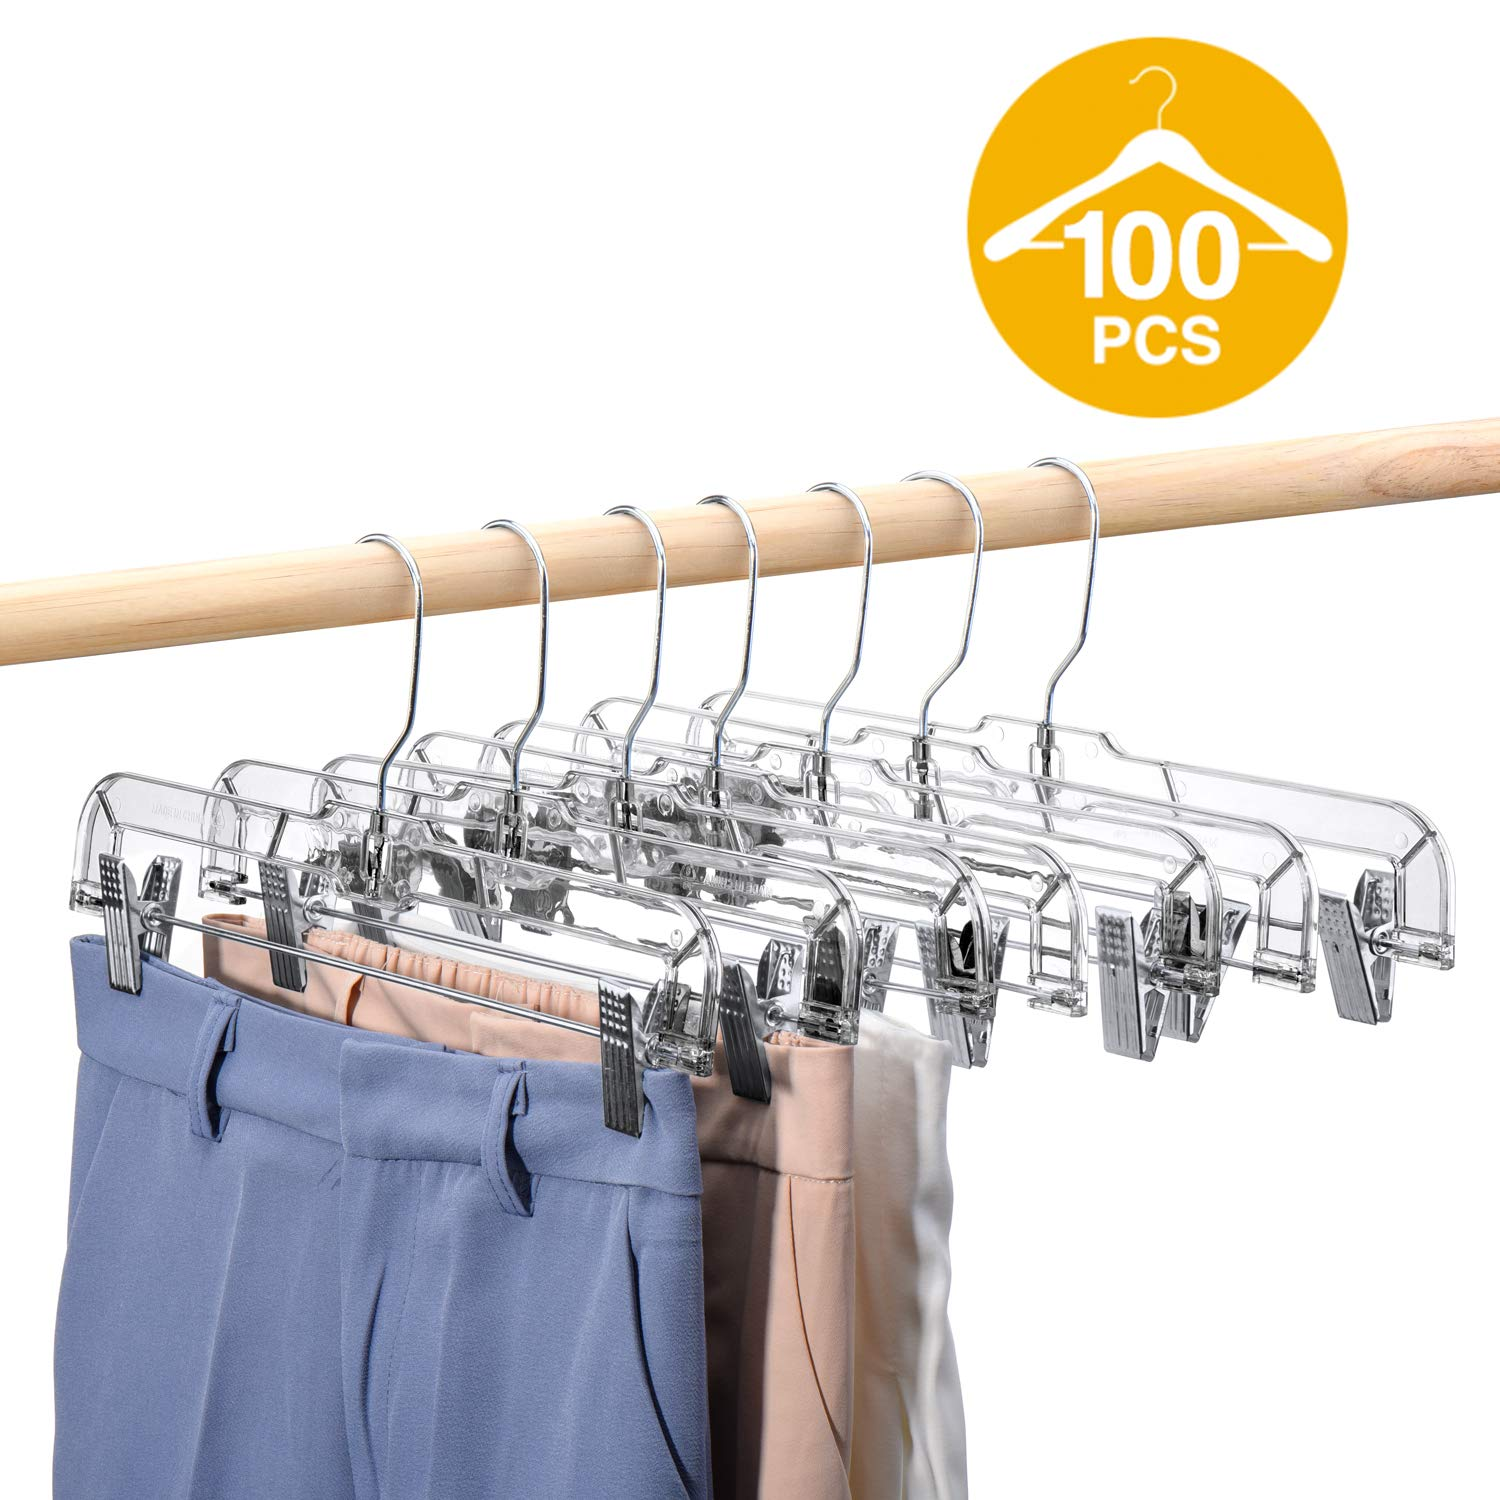 HOUSE DAY 100 Pack 14 inch Clear Plastic Skirt Hangers with Clips, Skirt Hangers, Clip Hangers for Pants,Trouser Bulk Plastic Pants Hangers by HOUSE DAY (Image #1)